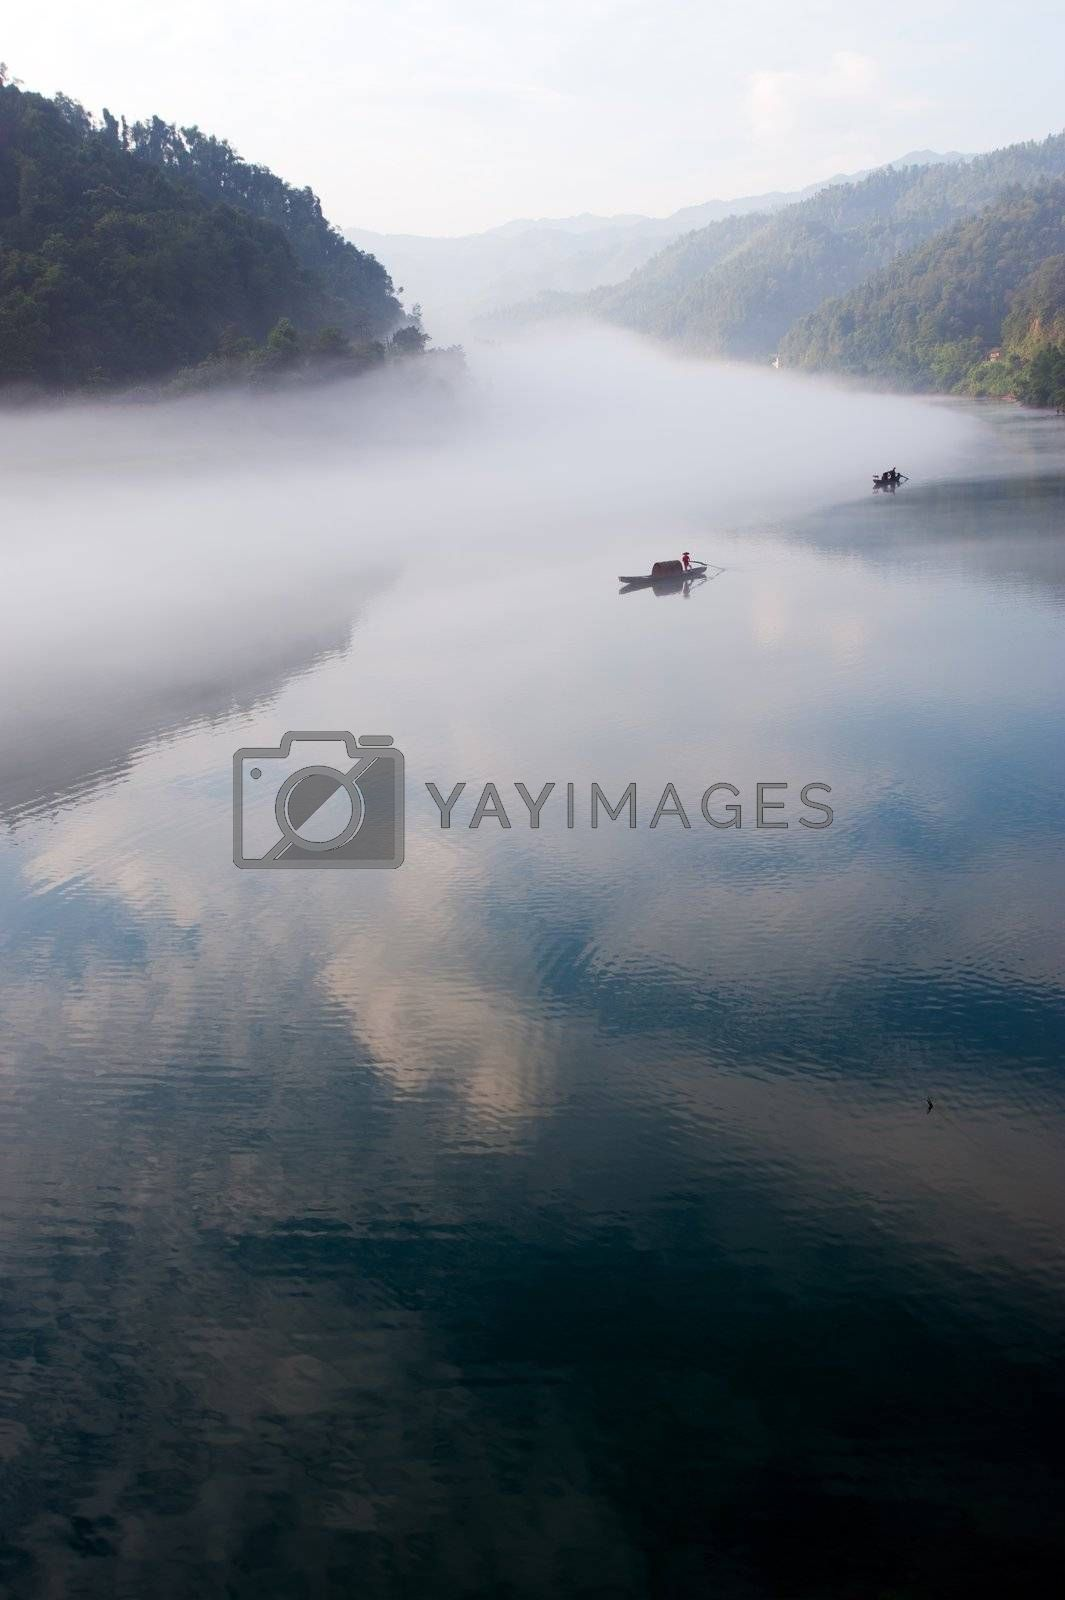 Fishing boat on the foggy river in Hunan province of China